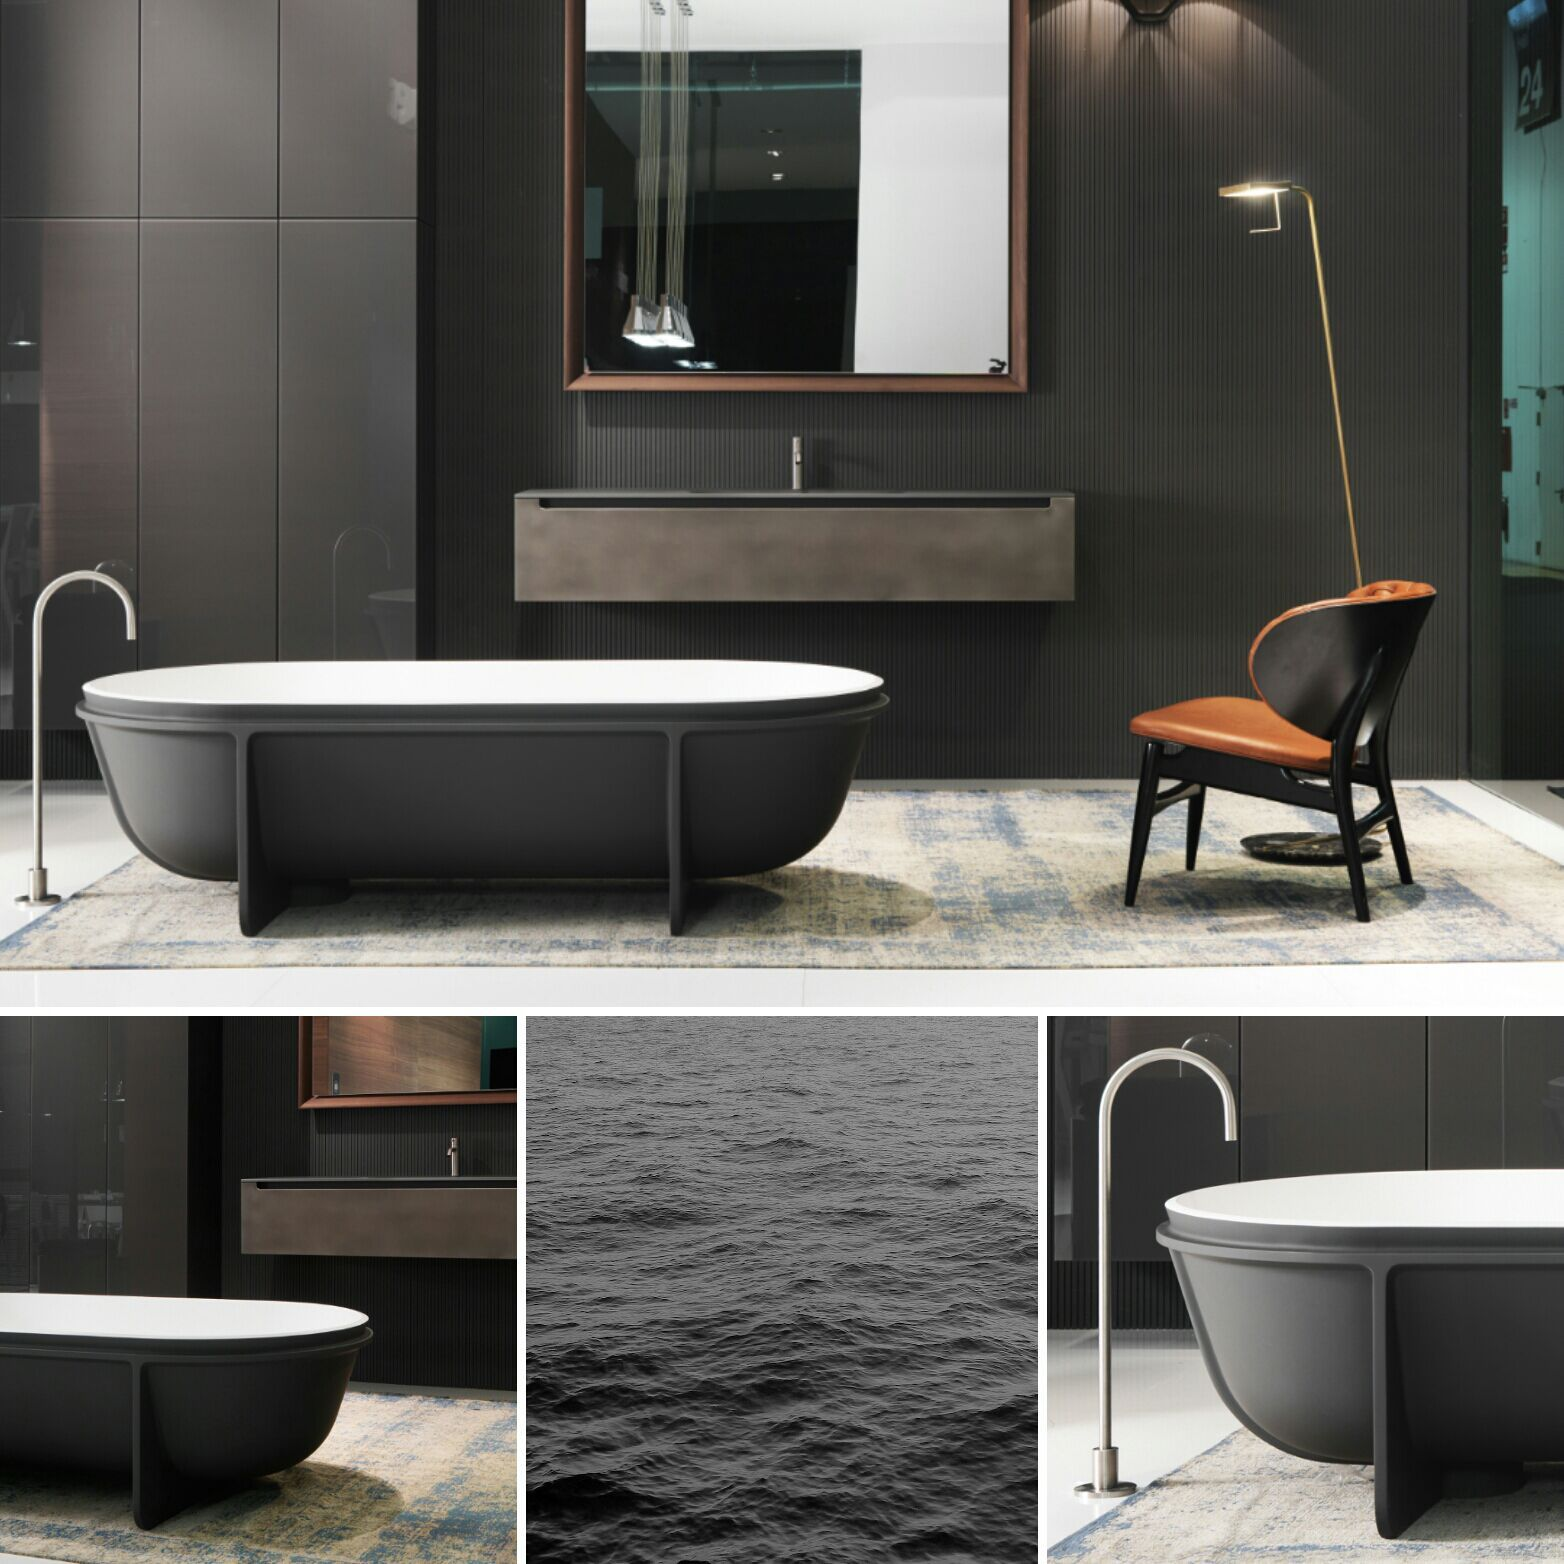 Color Mood By Falper Exclusive Grey As Class, Sophistication, Elegance